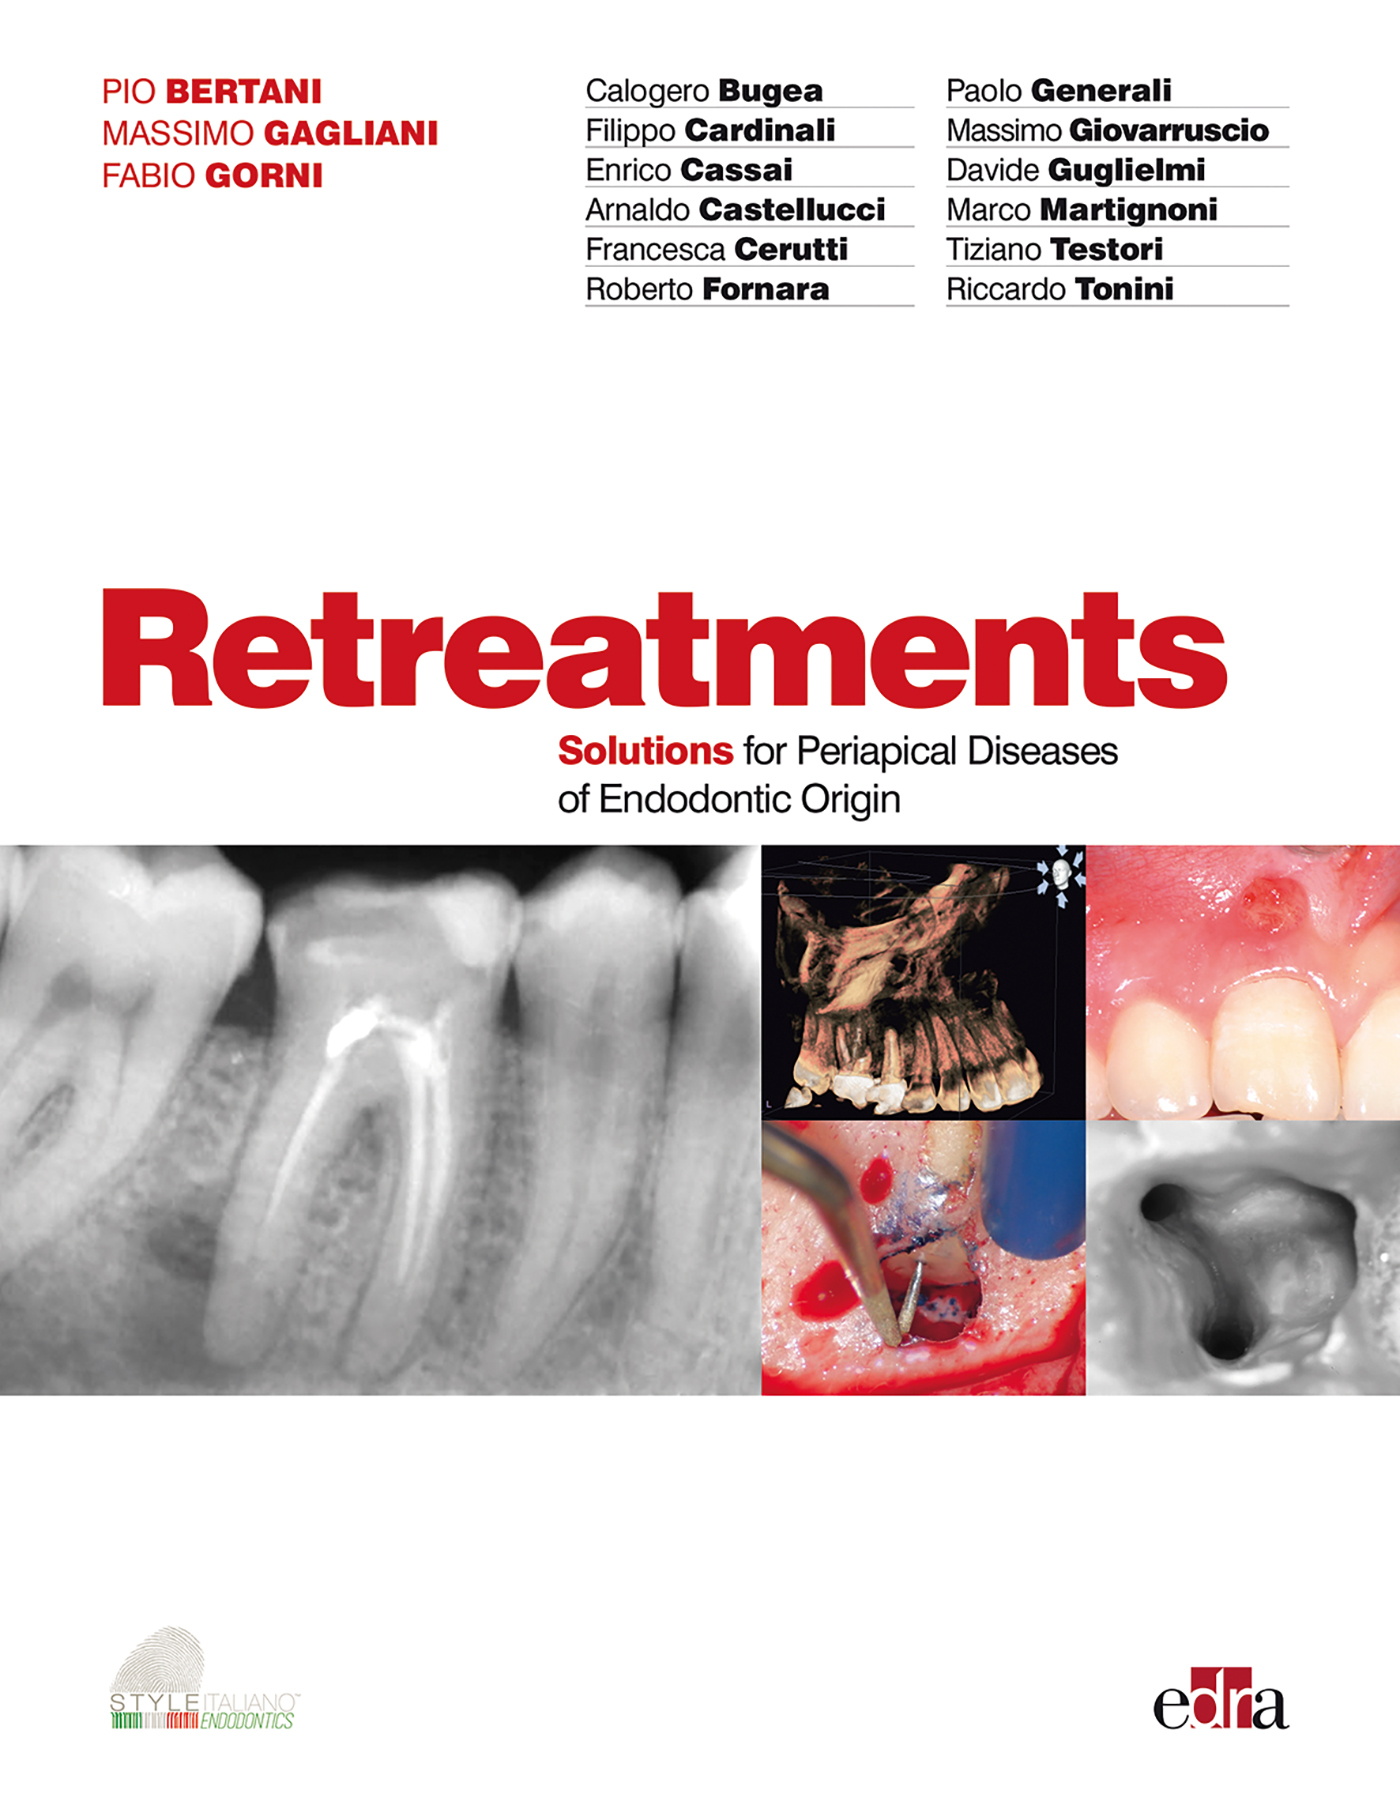 RETREATMENTS SOLUTIONS FOR PERIAPICAL DISEASES OF ENDODONTIC ORIGIN